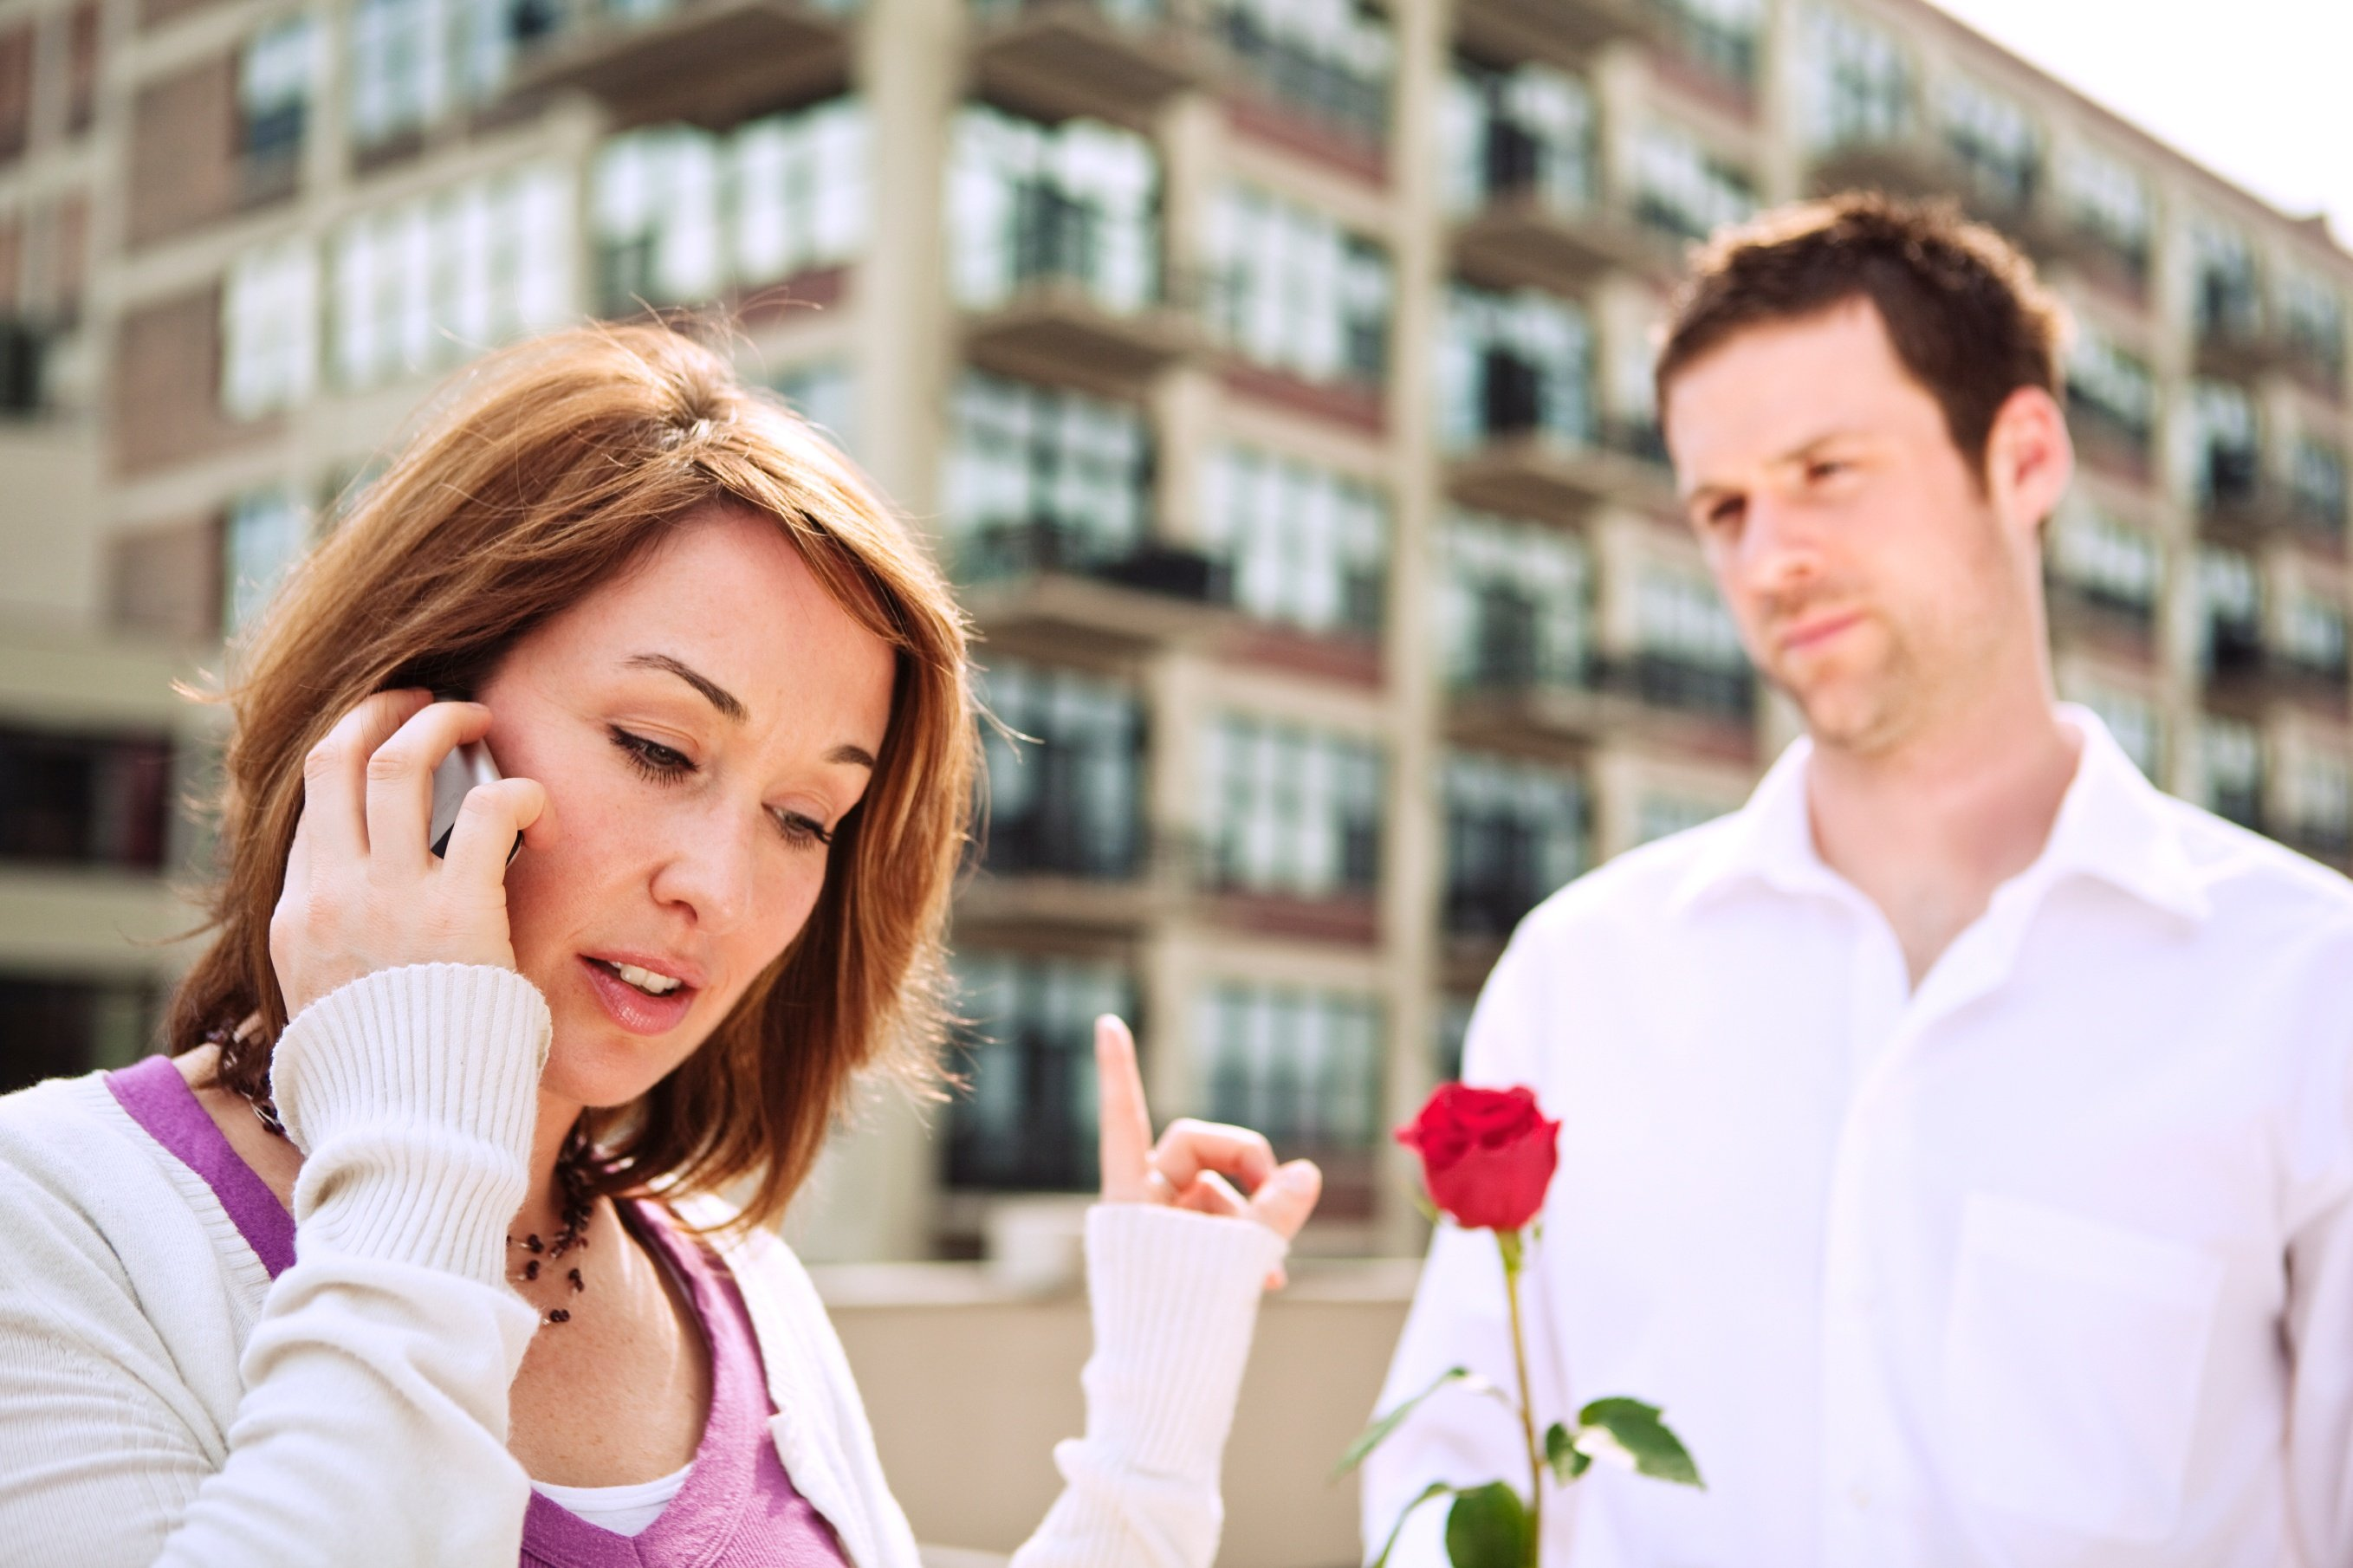 A woman on her phone unaware that her partner is holding out a rose to give her